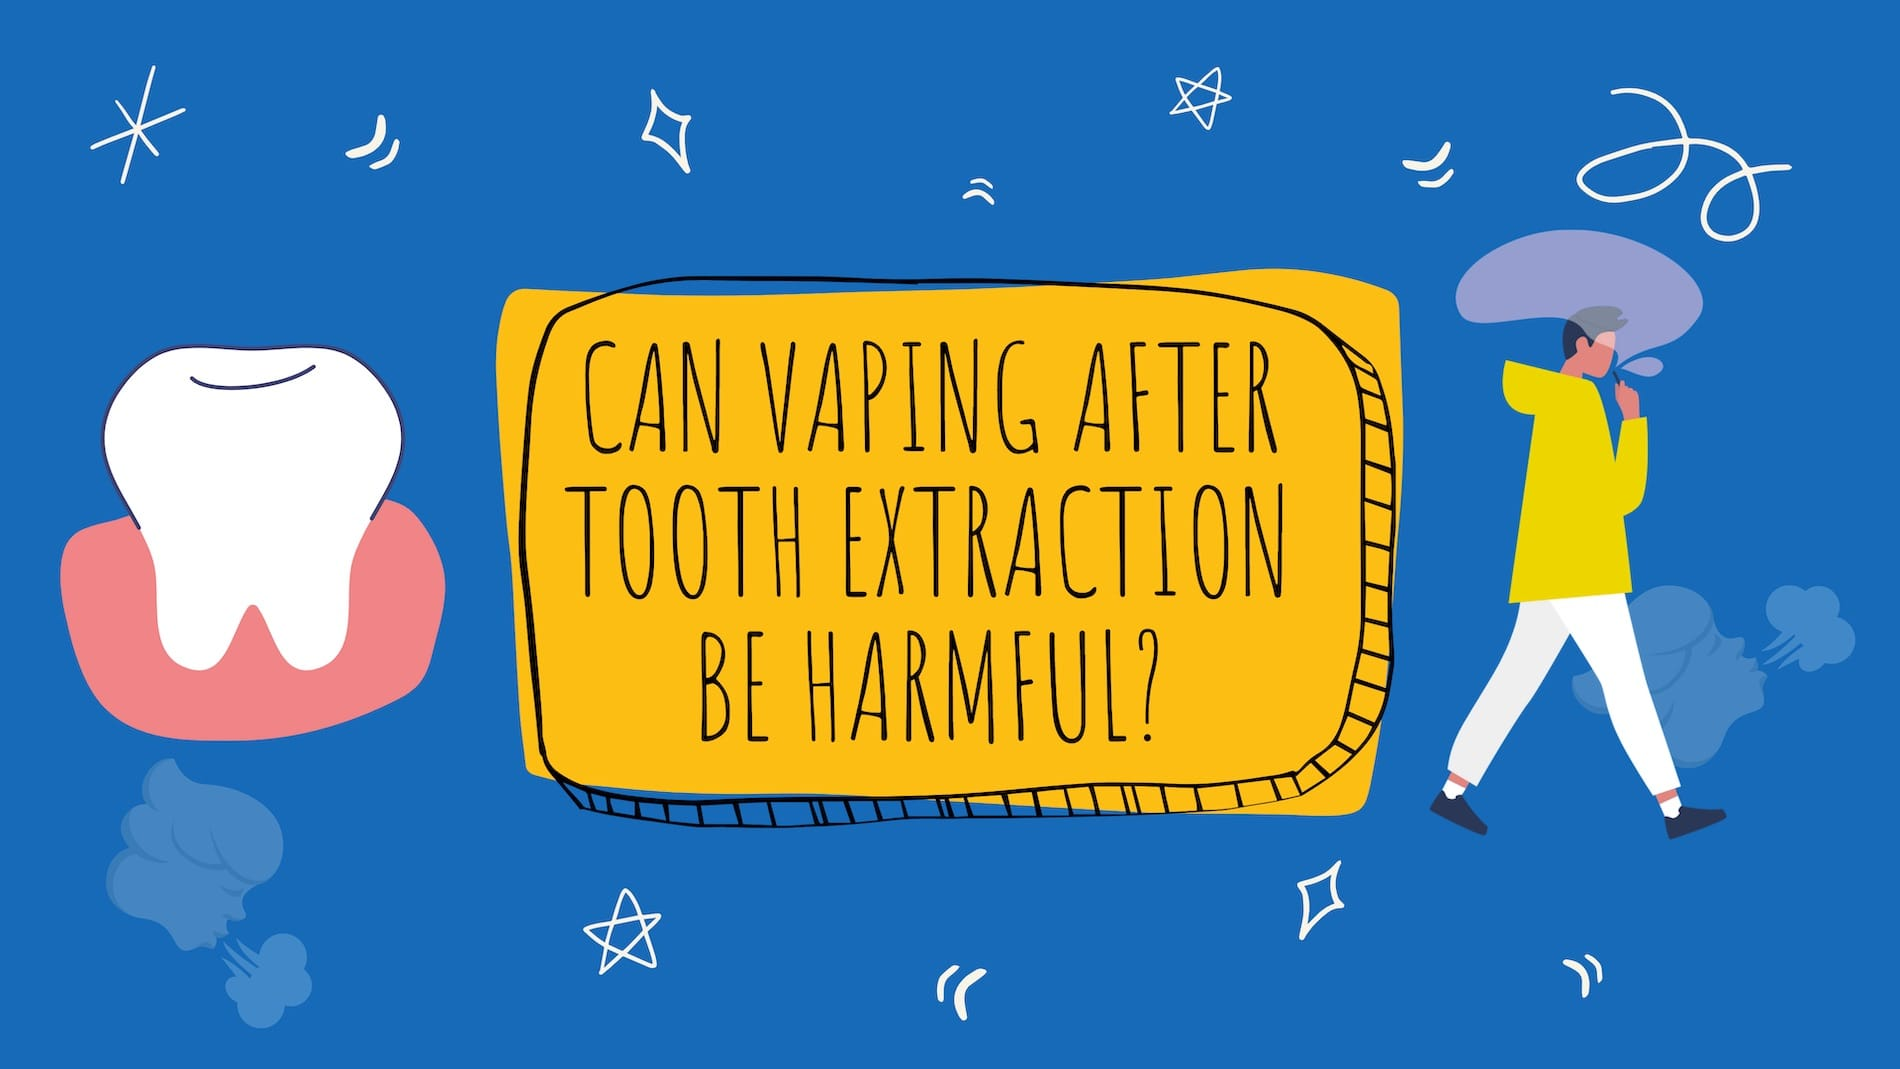 can vaping after tooth extraction be harmful